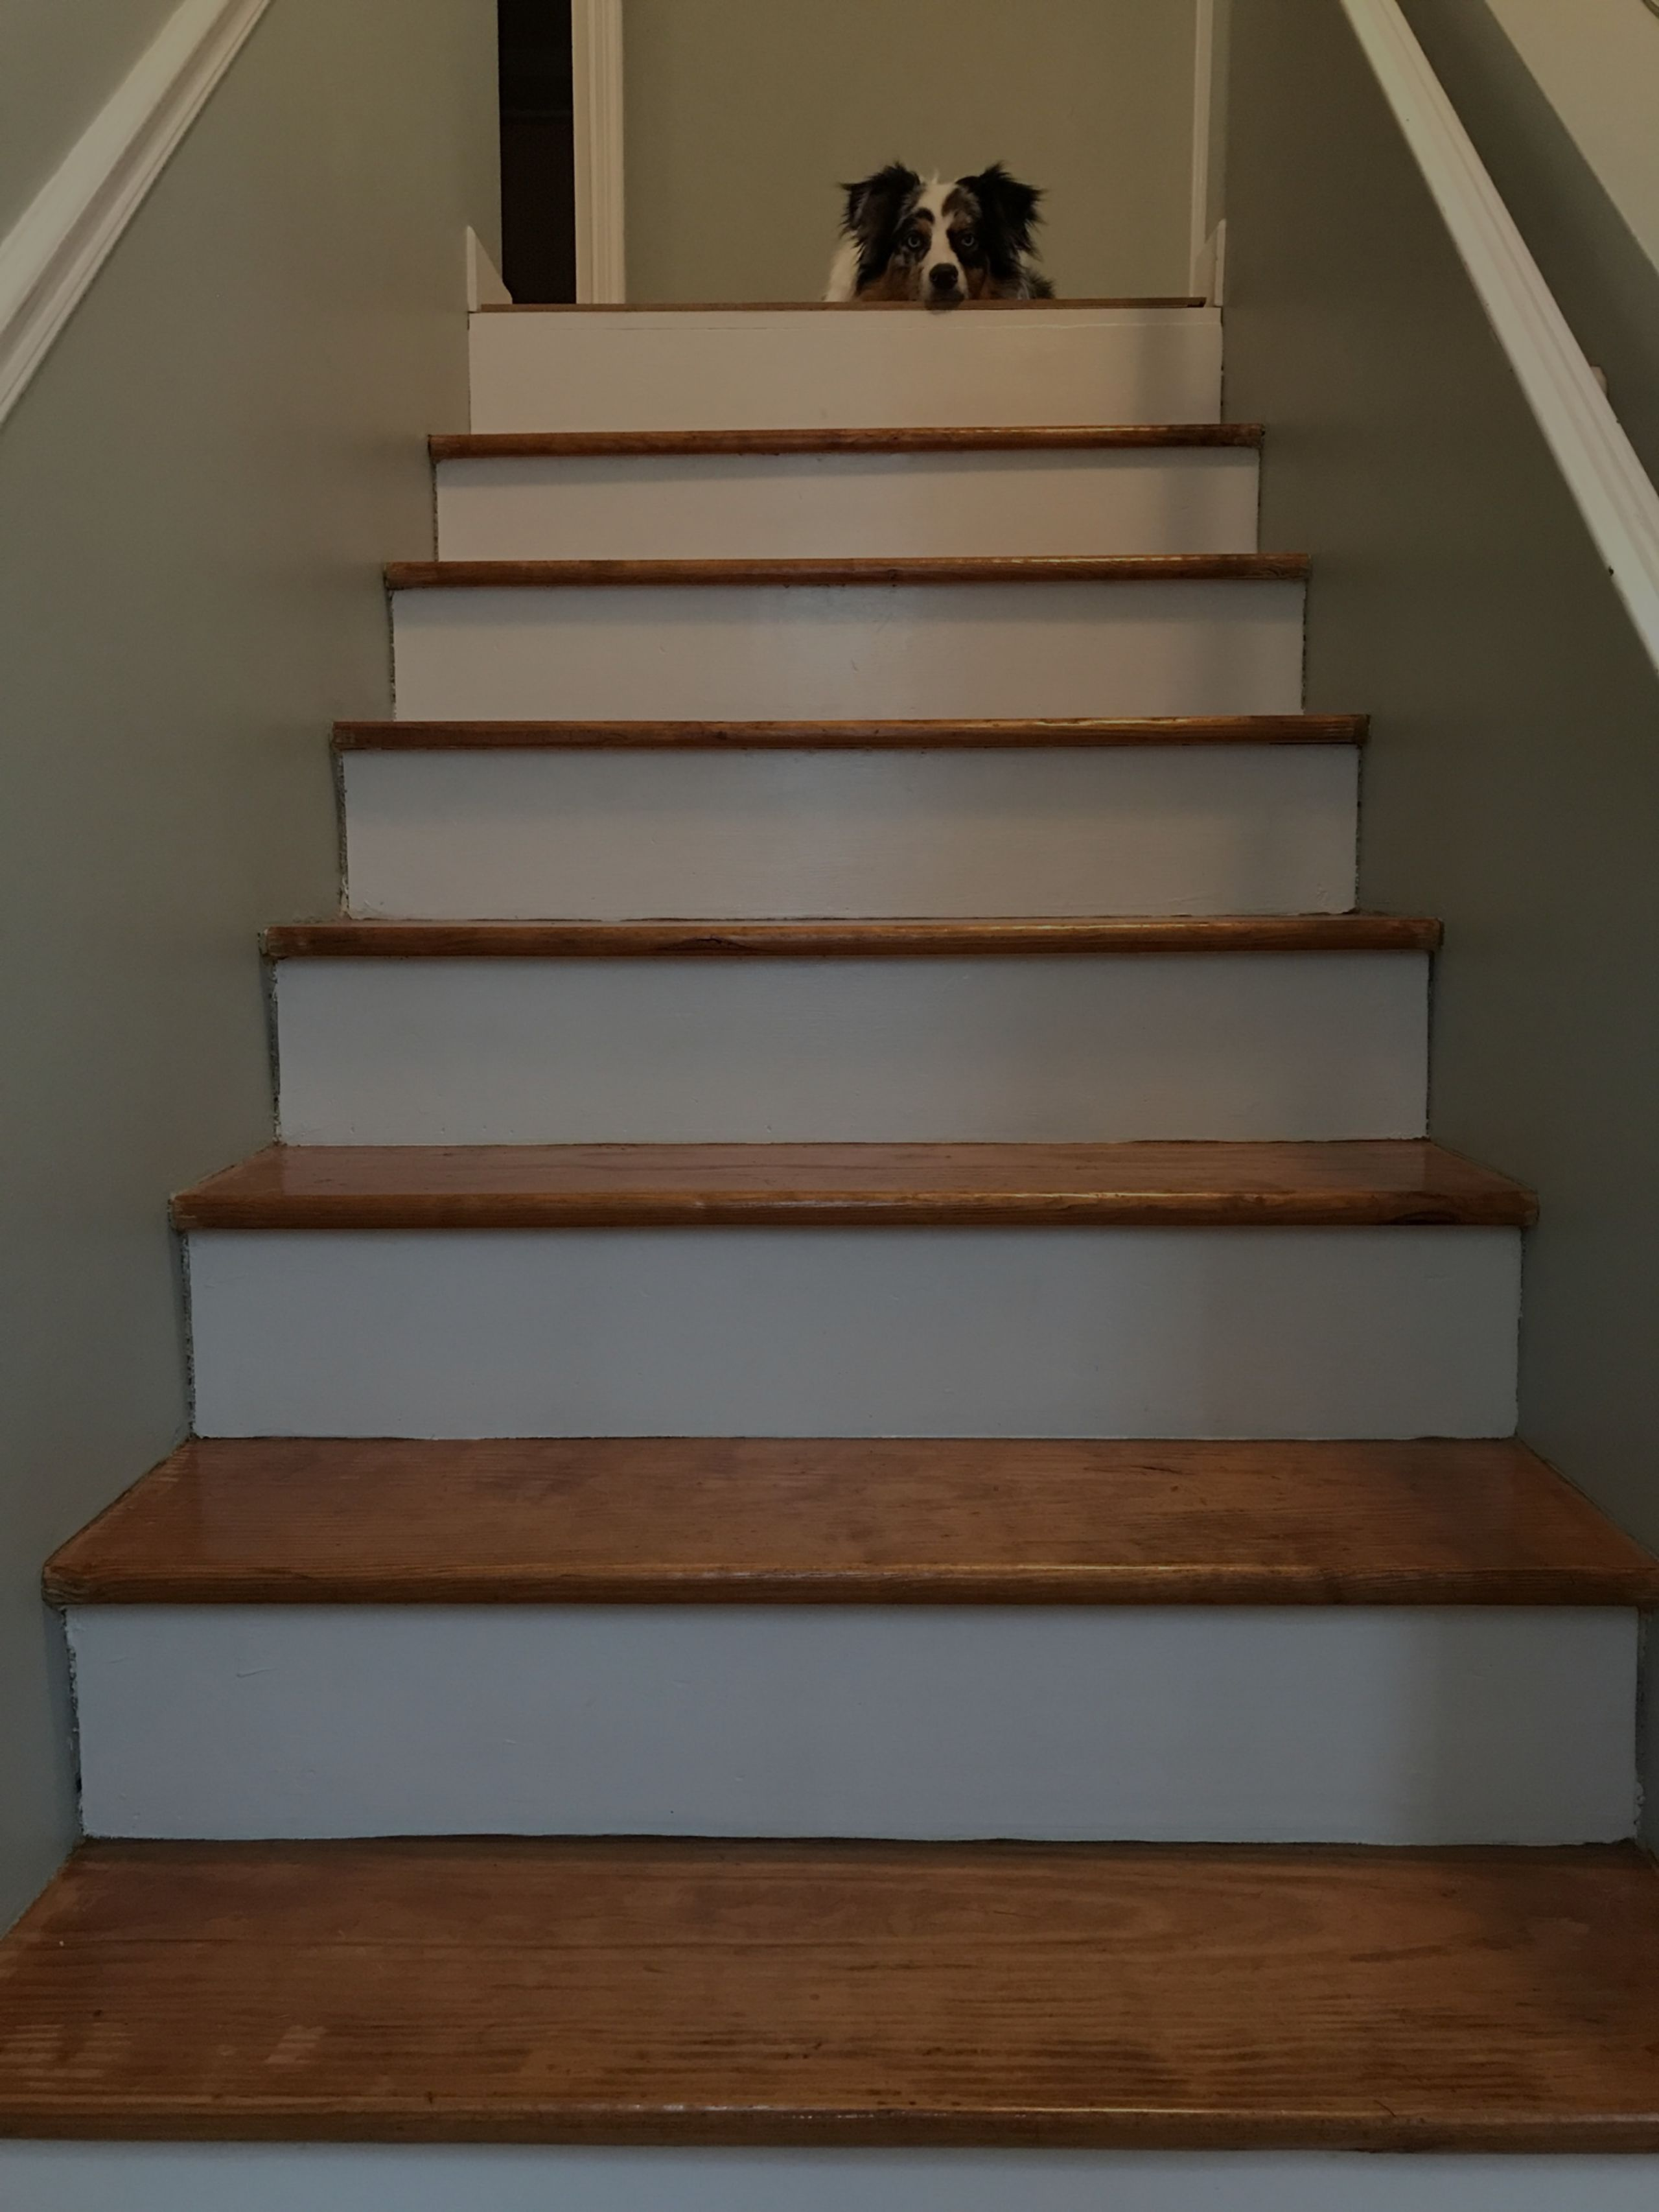 Transformation Tuesday: Carpeted Steps to Wood